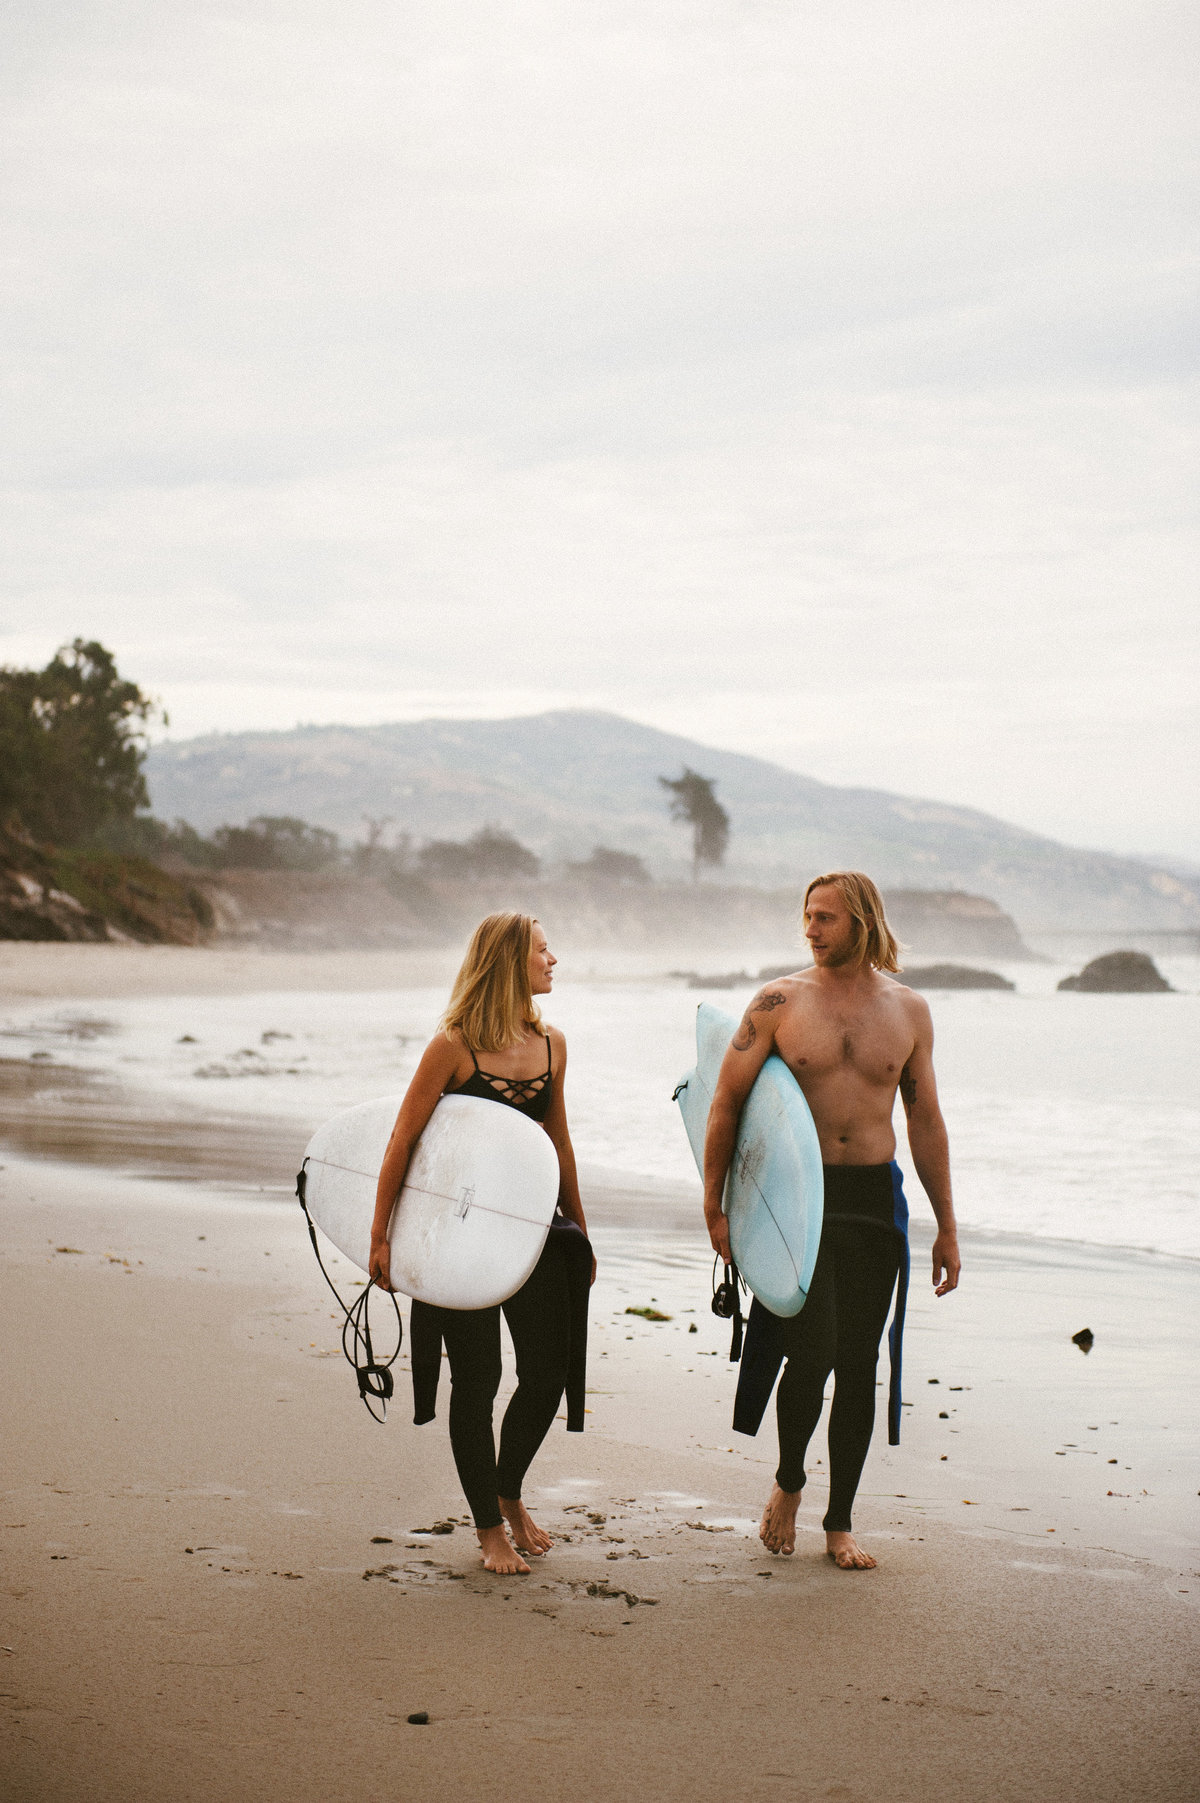 Lush Palm, surfing lifestyle photography